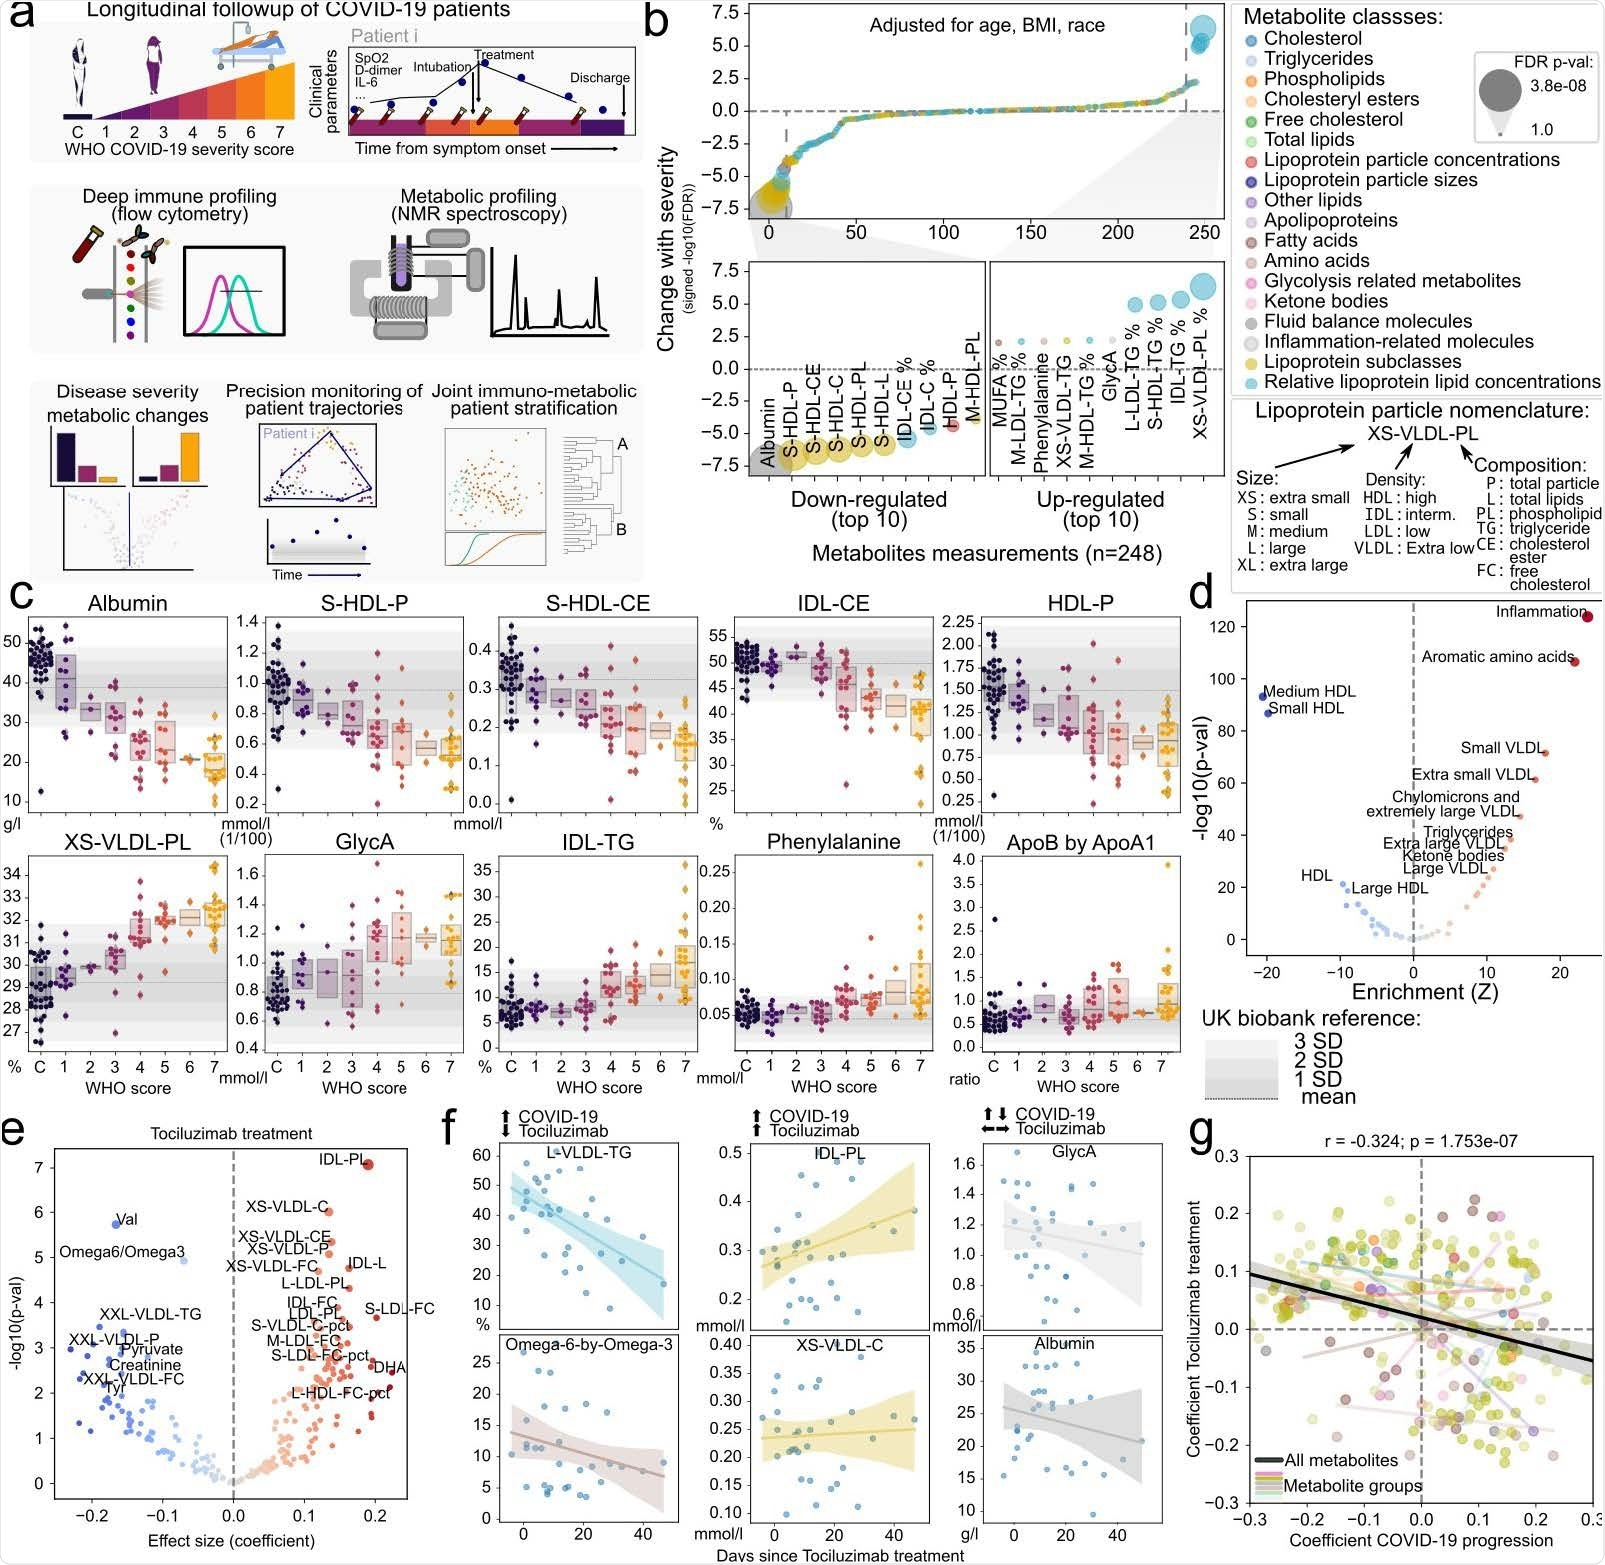 Discovery of metabolic biomarkers of COVID-19 severity and treatment. a) Schematic description of the patients under study, data types collected and approaches for their analysis. b) Association of metabolite abundance with COVID-19 severity for all 248 metabolic species (upper panel). The lower panel illustrates the 10 metabolites most associated with disease severity for each direction. c) Distribution of metabolite abundance for the metabolites most associated with COVID-19 severity depending on the sample WHO score classification. The grey horizontal dashed line represents the mean abundance of the metabolite in over 150,000 individuals from the UK biobank cohort and grey bars represent the standard deviation from the mean. d) Enrichment analysis of metabolites changing with COVID-19 severity in functional terms. e) Association of metabolite abundance with the time since tocilizumab treatment. The coefficient values refer to the change per day in relation to the mean. f) Abundance of metabolites with discordant (left), concordant (center) or indifferent (right) change between COVID-19 severity and tocilizumab treatment for treated patients. g) Comparison of the coefficients of change in COVID-19 severity (x-axis) and effect of tocilizumab treatment over time (y-axis). Each point is a metabolite colored by its class identity as in b). The black regression line indicates the overall trend between all metabolites, while the colored regression lines indicate the trend for each group of metabolites as in panel b).